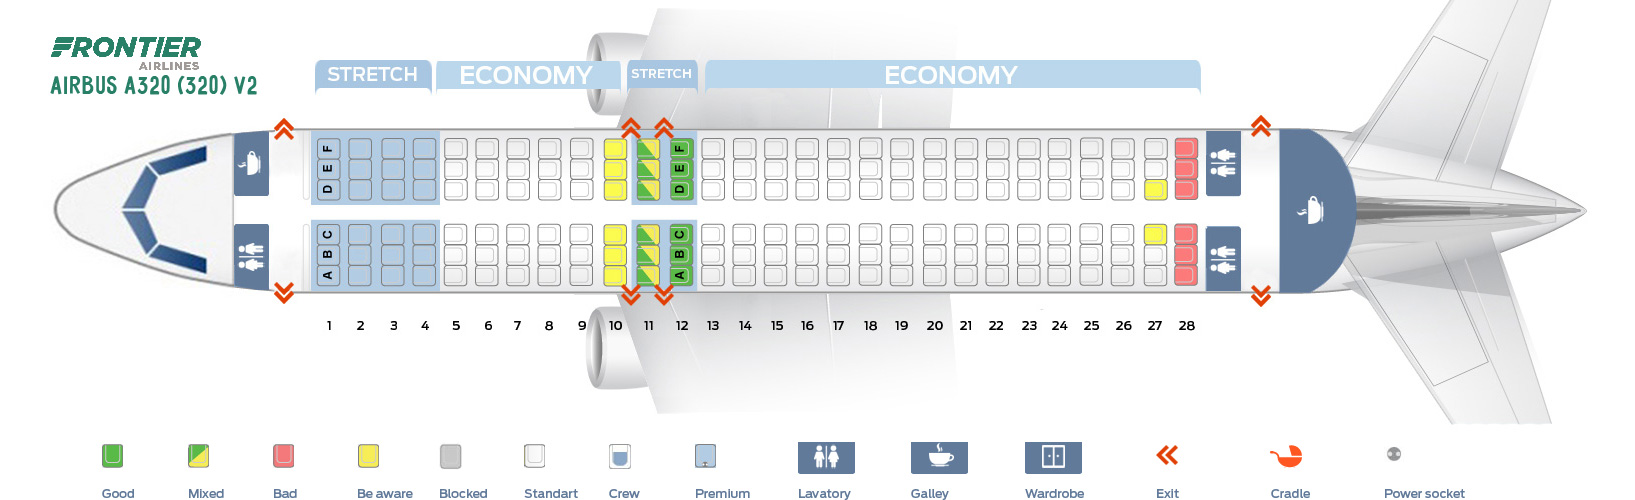 seat map airbus a320 200 frontier airlines best seats in the plane